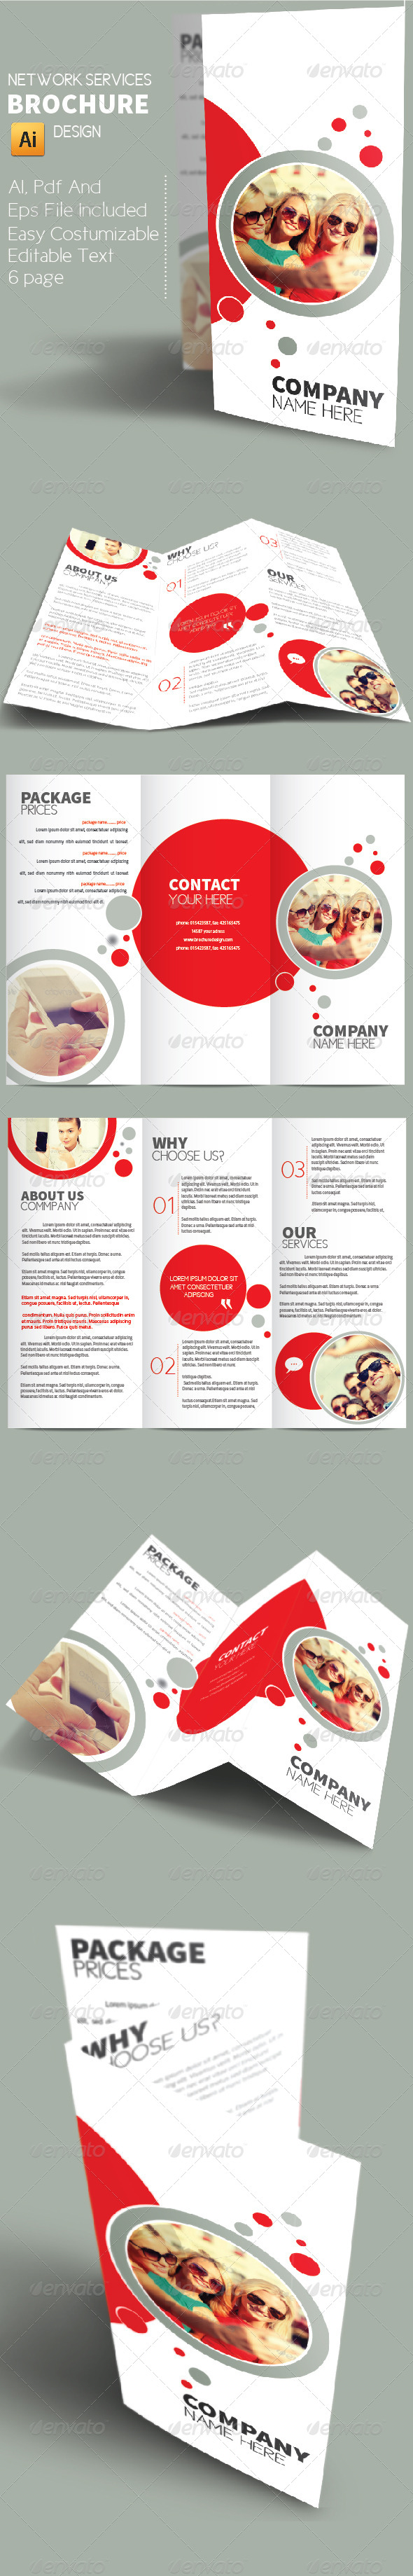 GraphicRiver Network Services Brochure Design 8646605